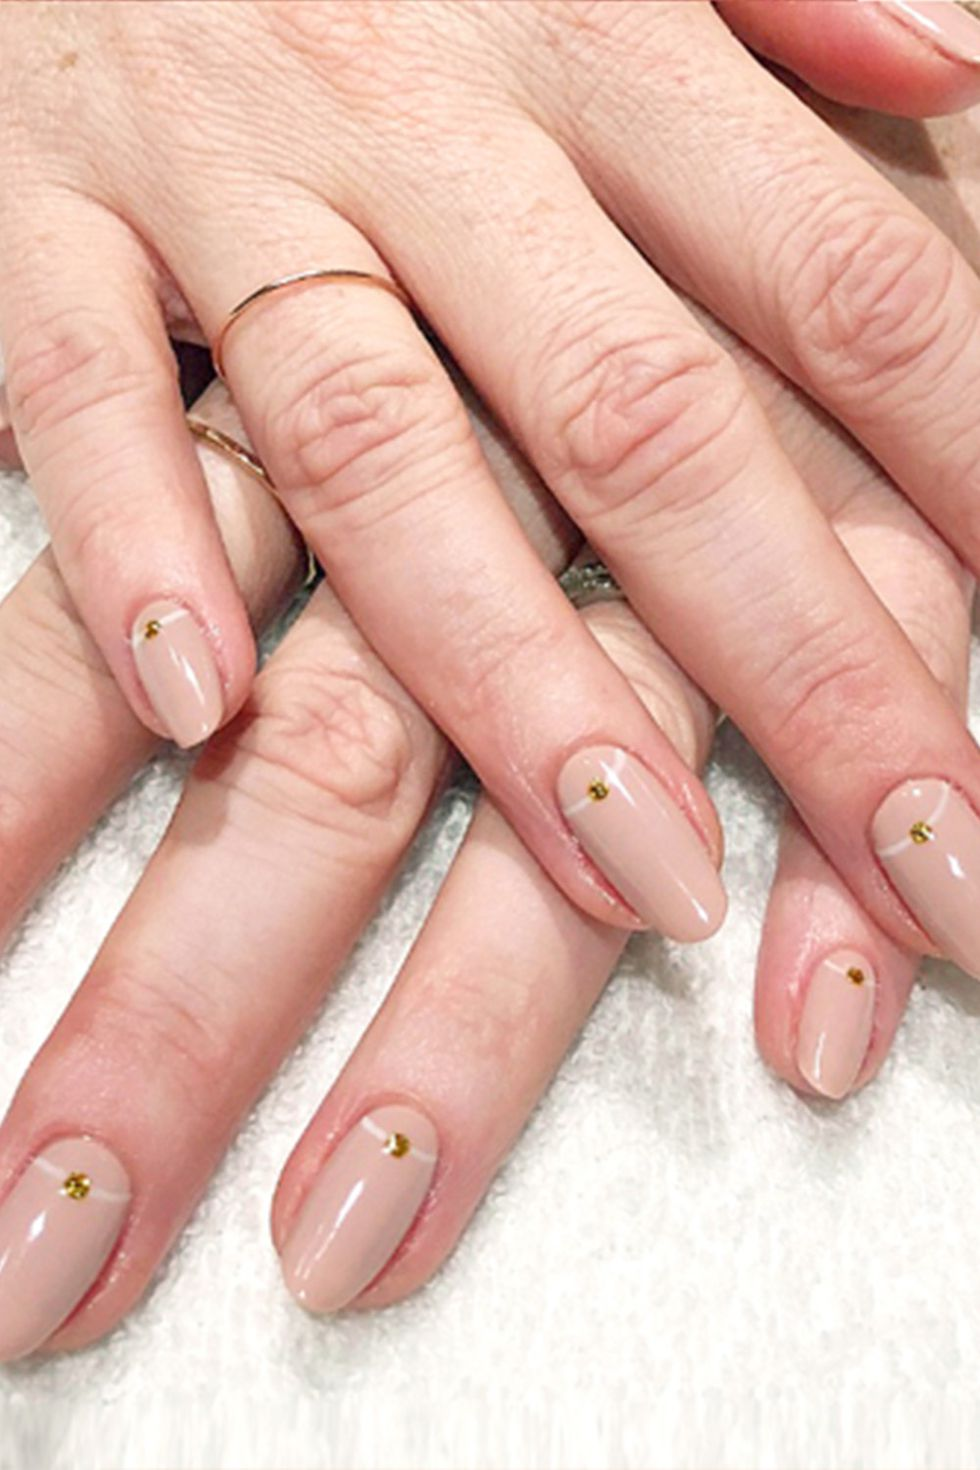 Almond Nail Design in Cream Color with Golden Dots-vvpretty